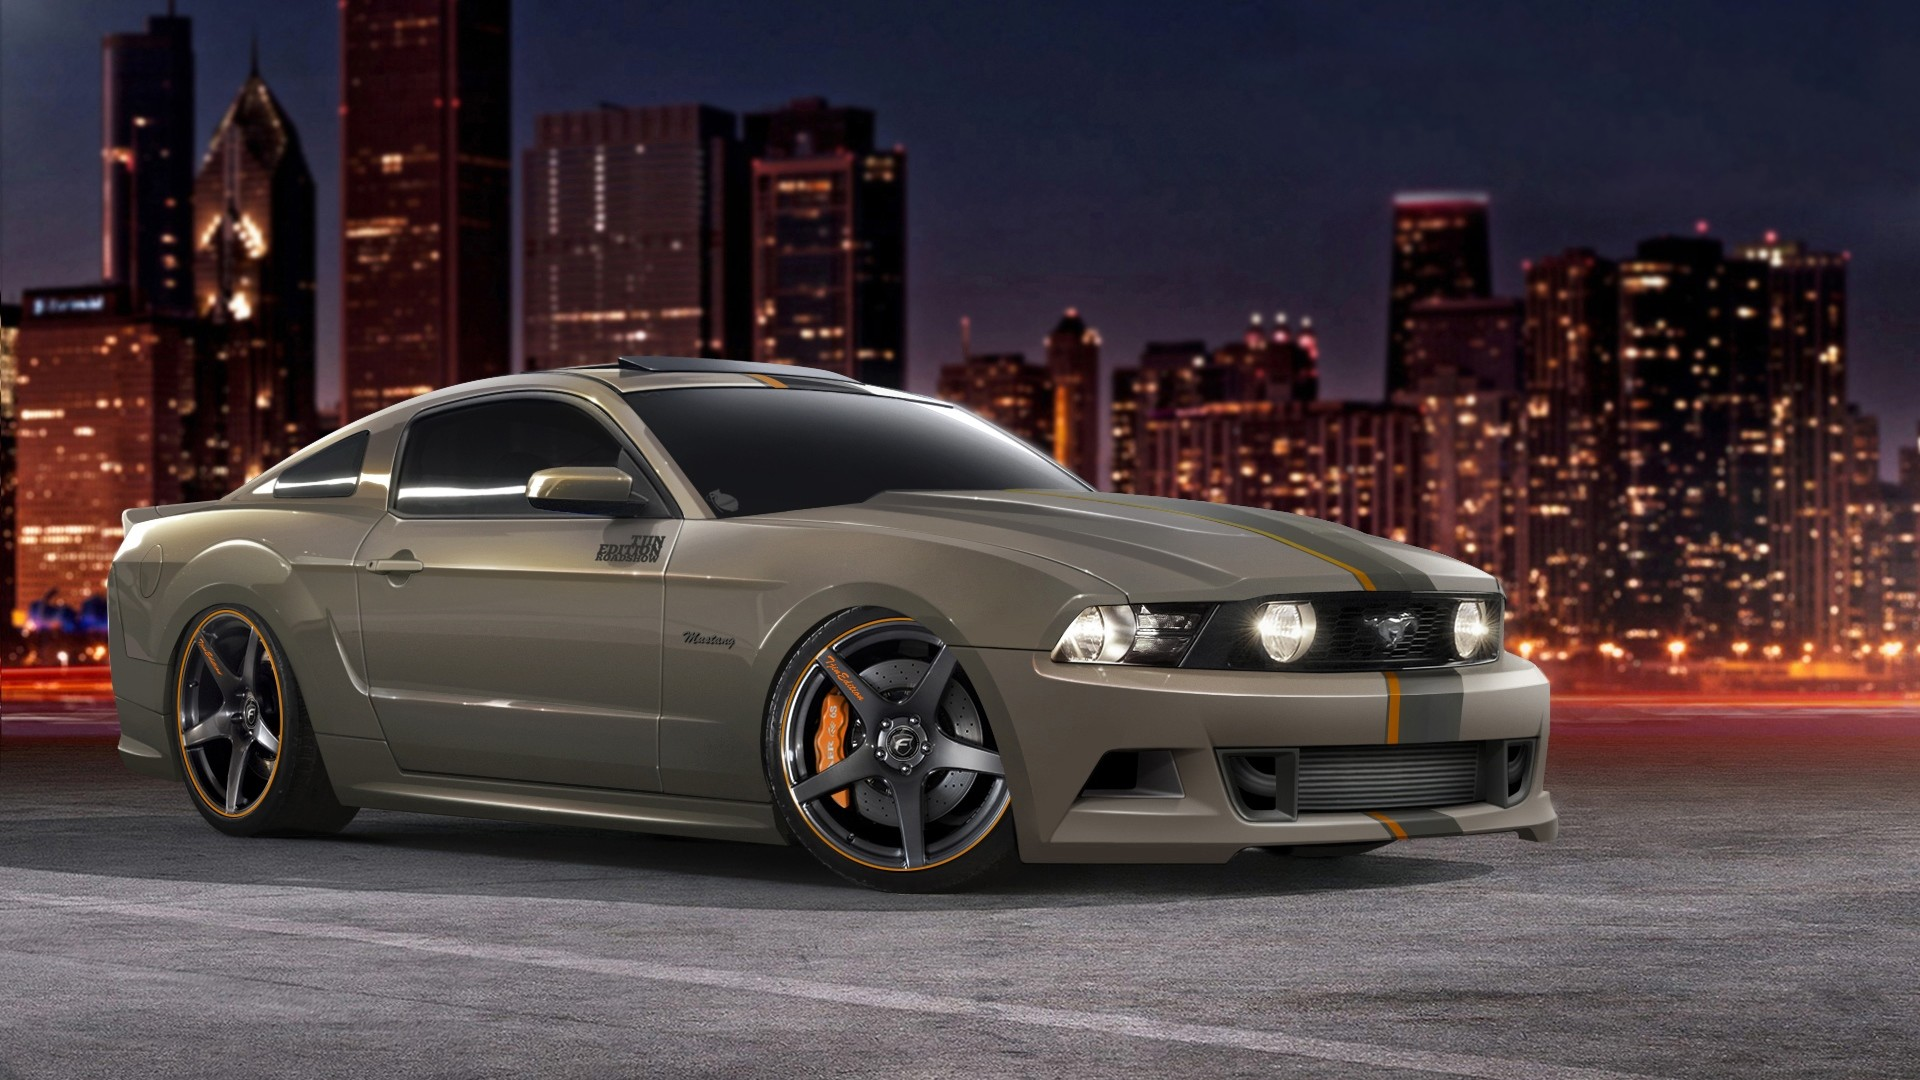 Wallpaper ford, mustang, gt 5 0, tjin edition, tuning, muscle